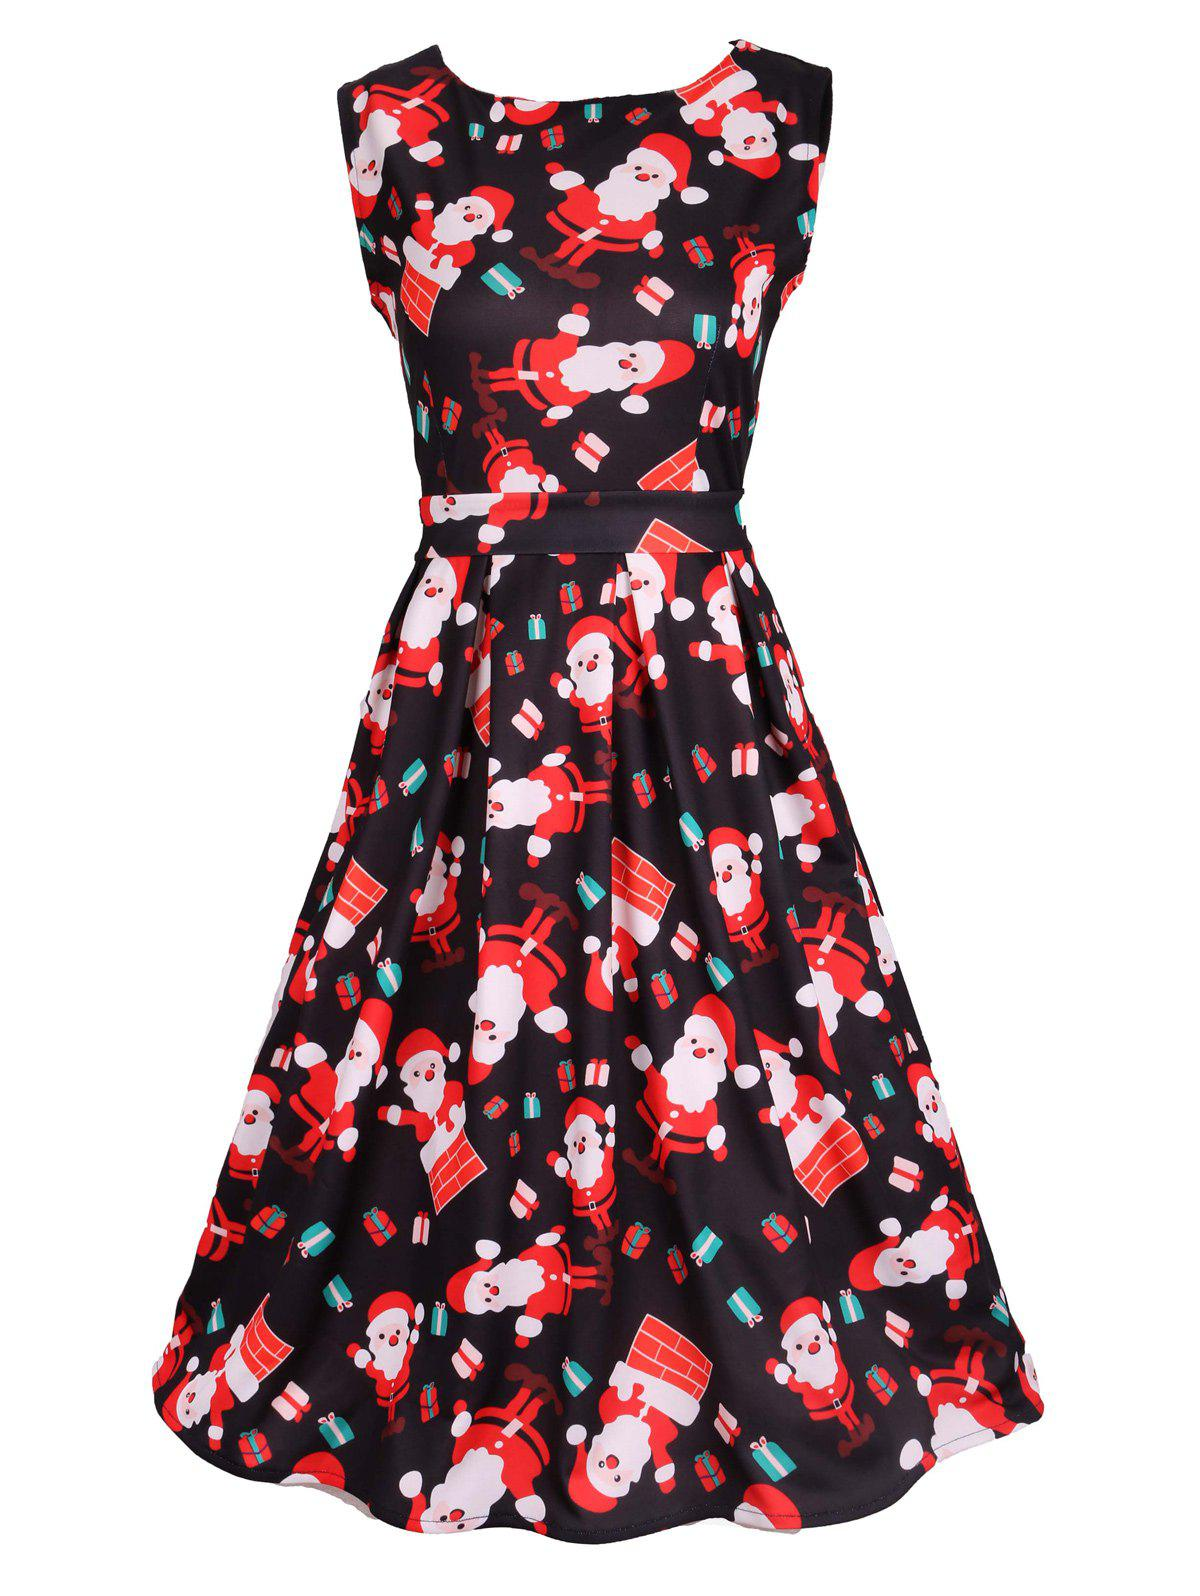 Santa Print Sleeveless Flare DressWOMEN<br><br>Size: 2XL; Color: BLACK; Style: Vintage; Material: Cotton Blend,Polyester; Silhouette: A-Line; Dresses Length: Knee-Length; Neckline: Scoop Neck; Sleeve Length: Sleeveless; Pattern Type: Print; With Belt: Yes; Season: Fall,Spring,Summer; Weight: 0.3700kg; Package Contents: 1 x Dress  1 x Belt;